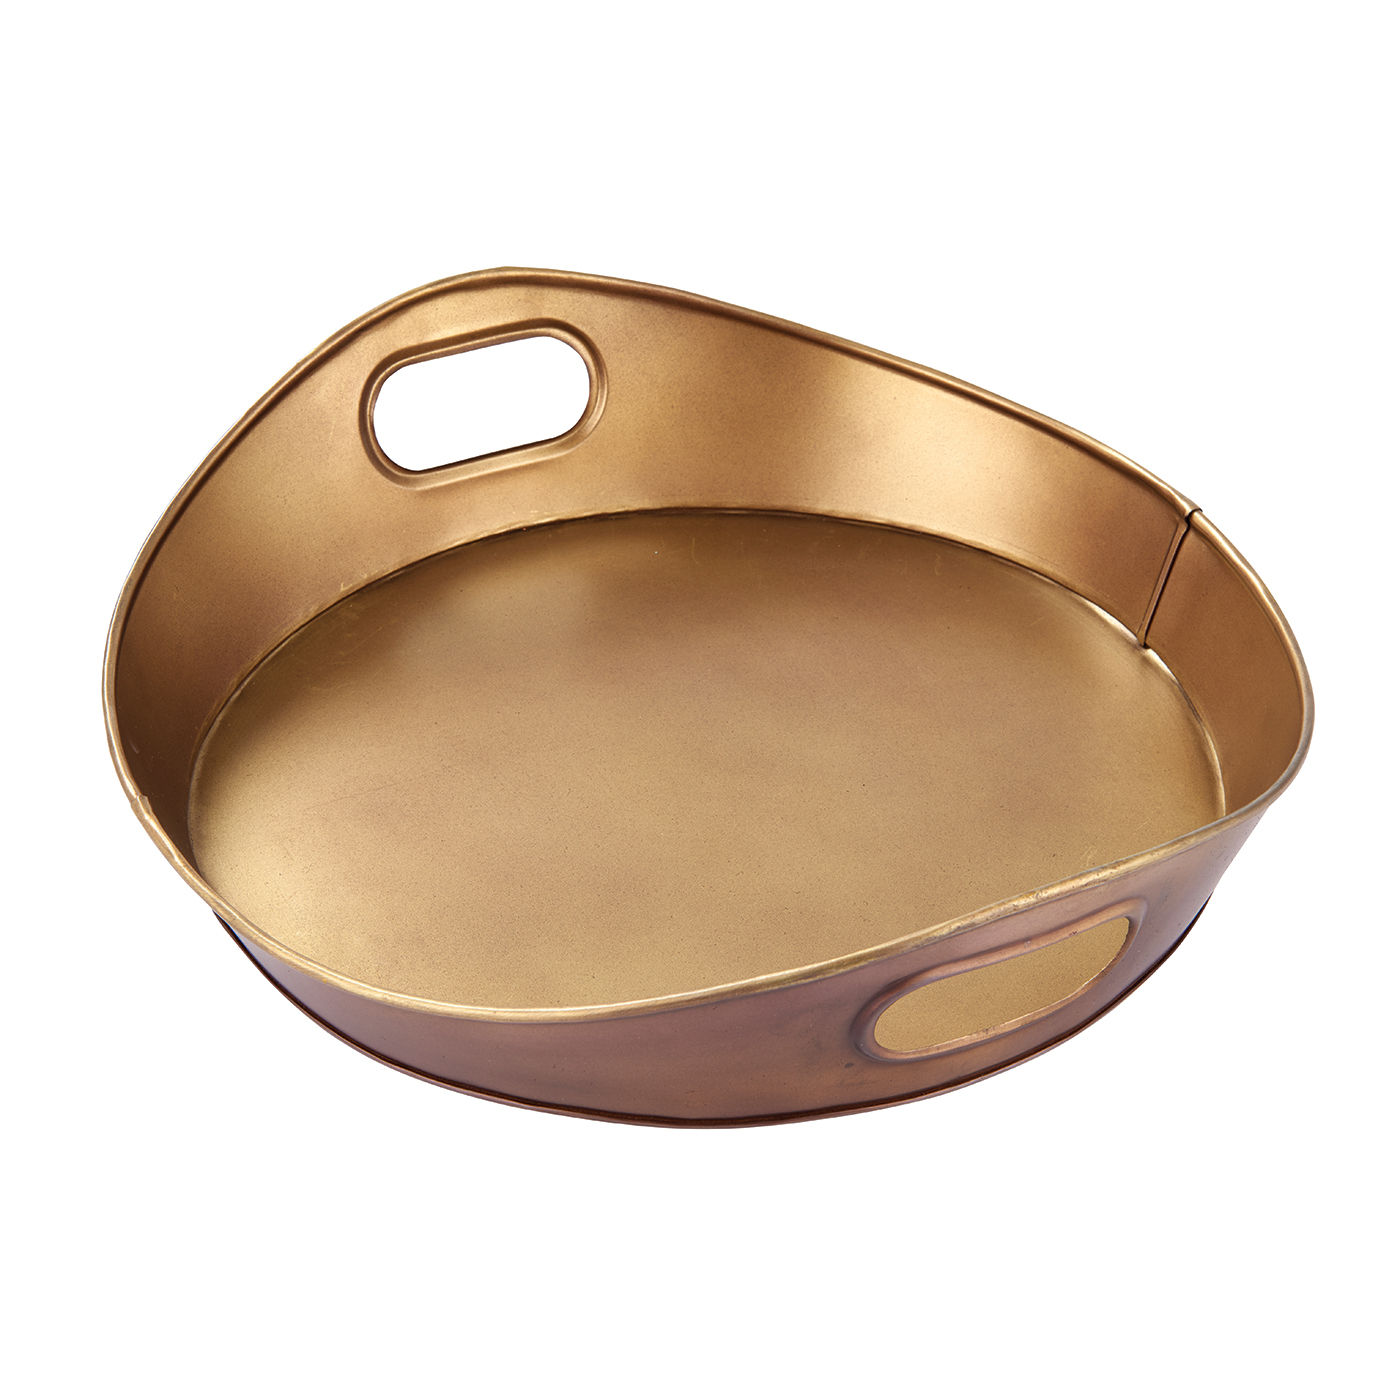 Endon Harding medium tray Aged brass effect plate H: 90mm W: 365mm L: 390mm